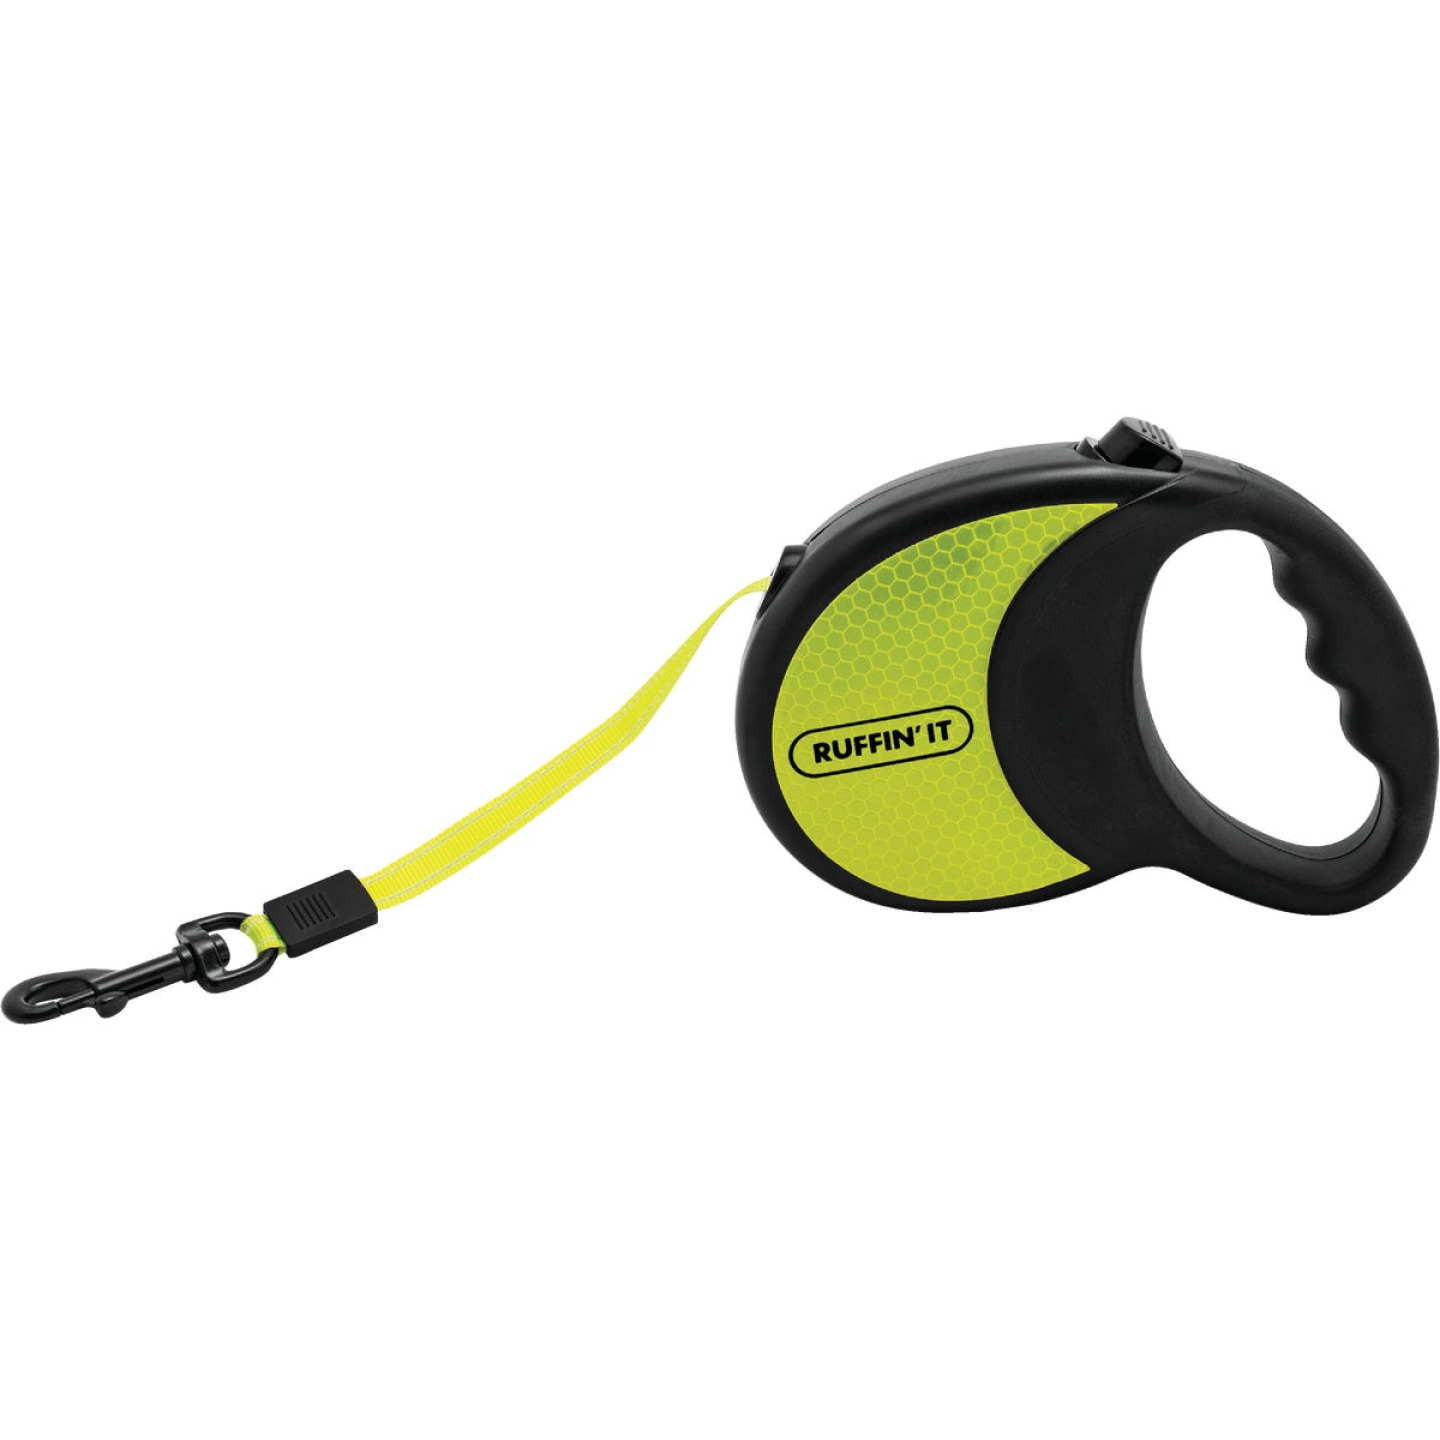 Westminster Pet Ruffin' it 16 Ft. Webbed Reflective Neon Yellow Up to 50 Lb. Dog Retractable Leash Image 2